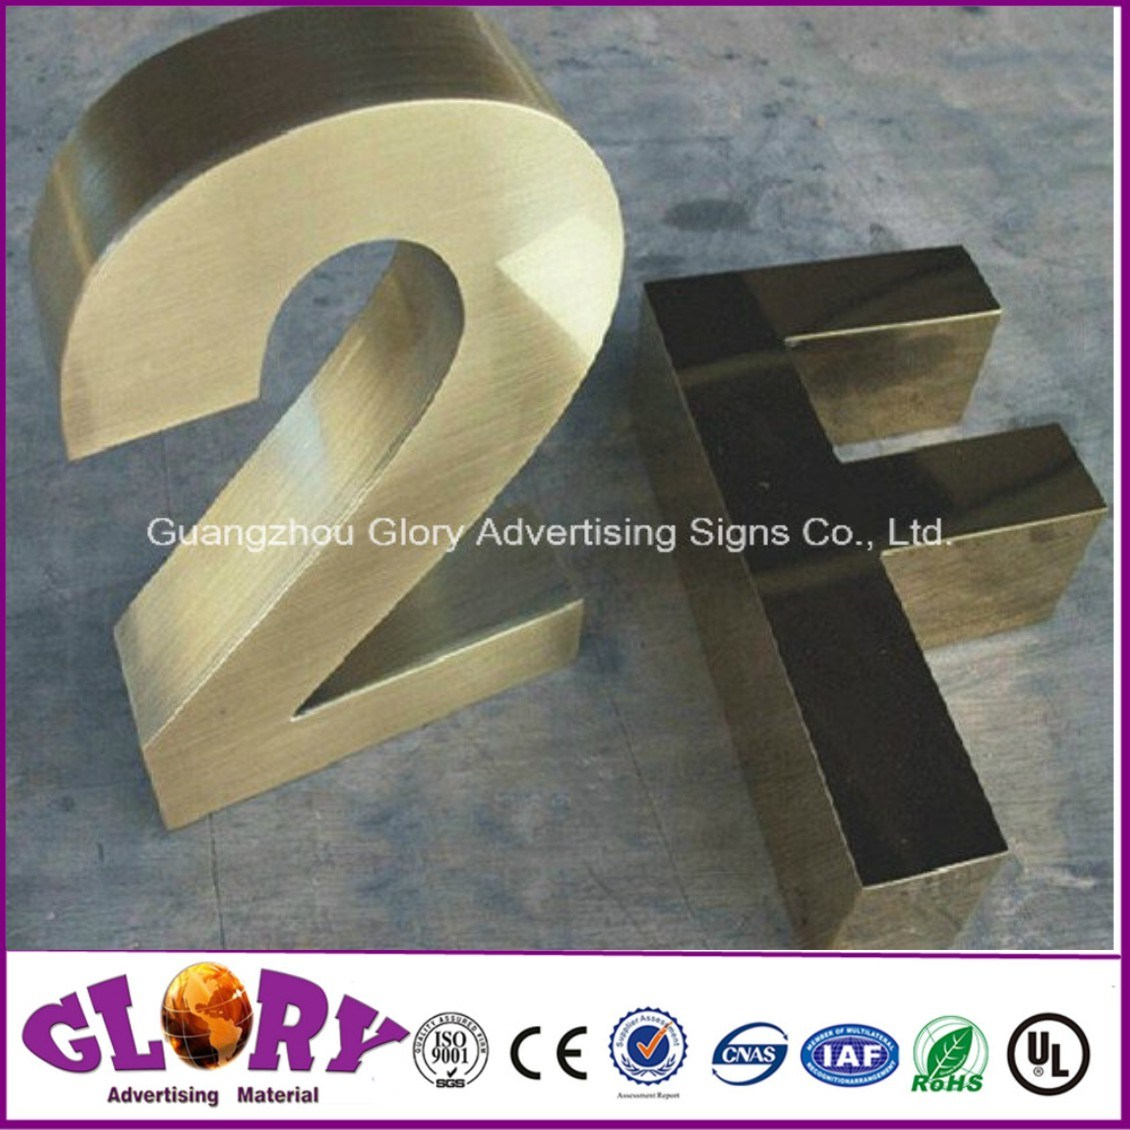 Number Sign with LED Light up Letter Sign for LED Display